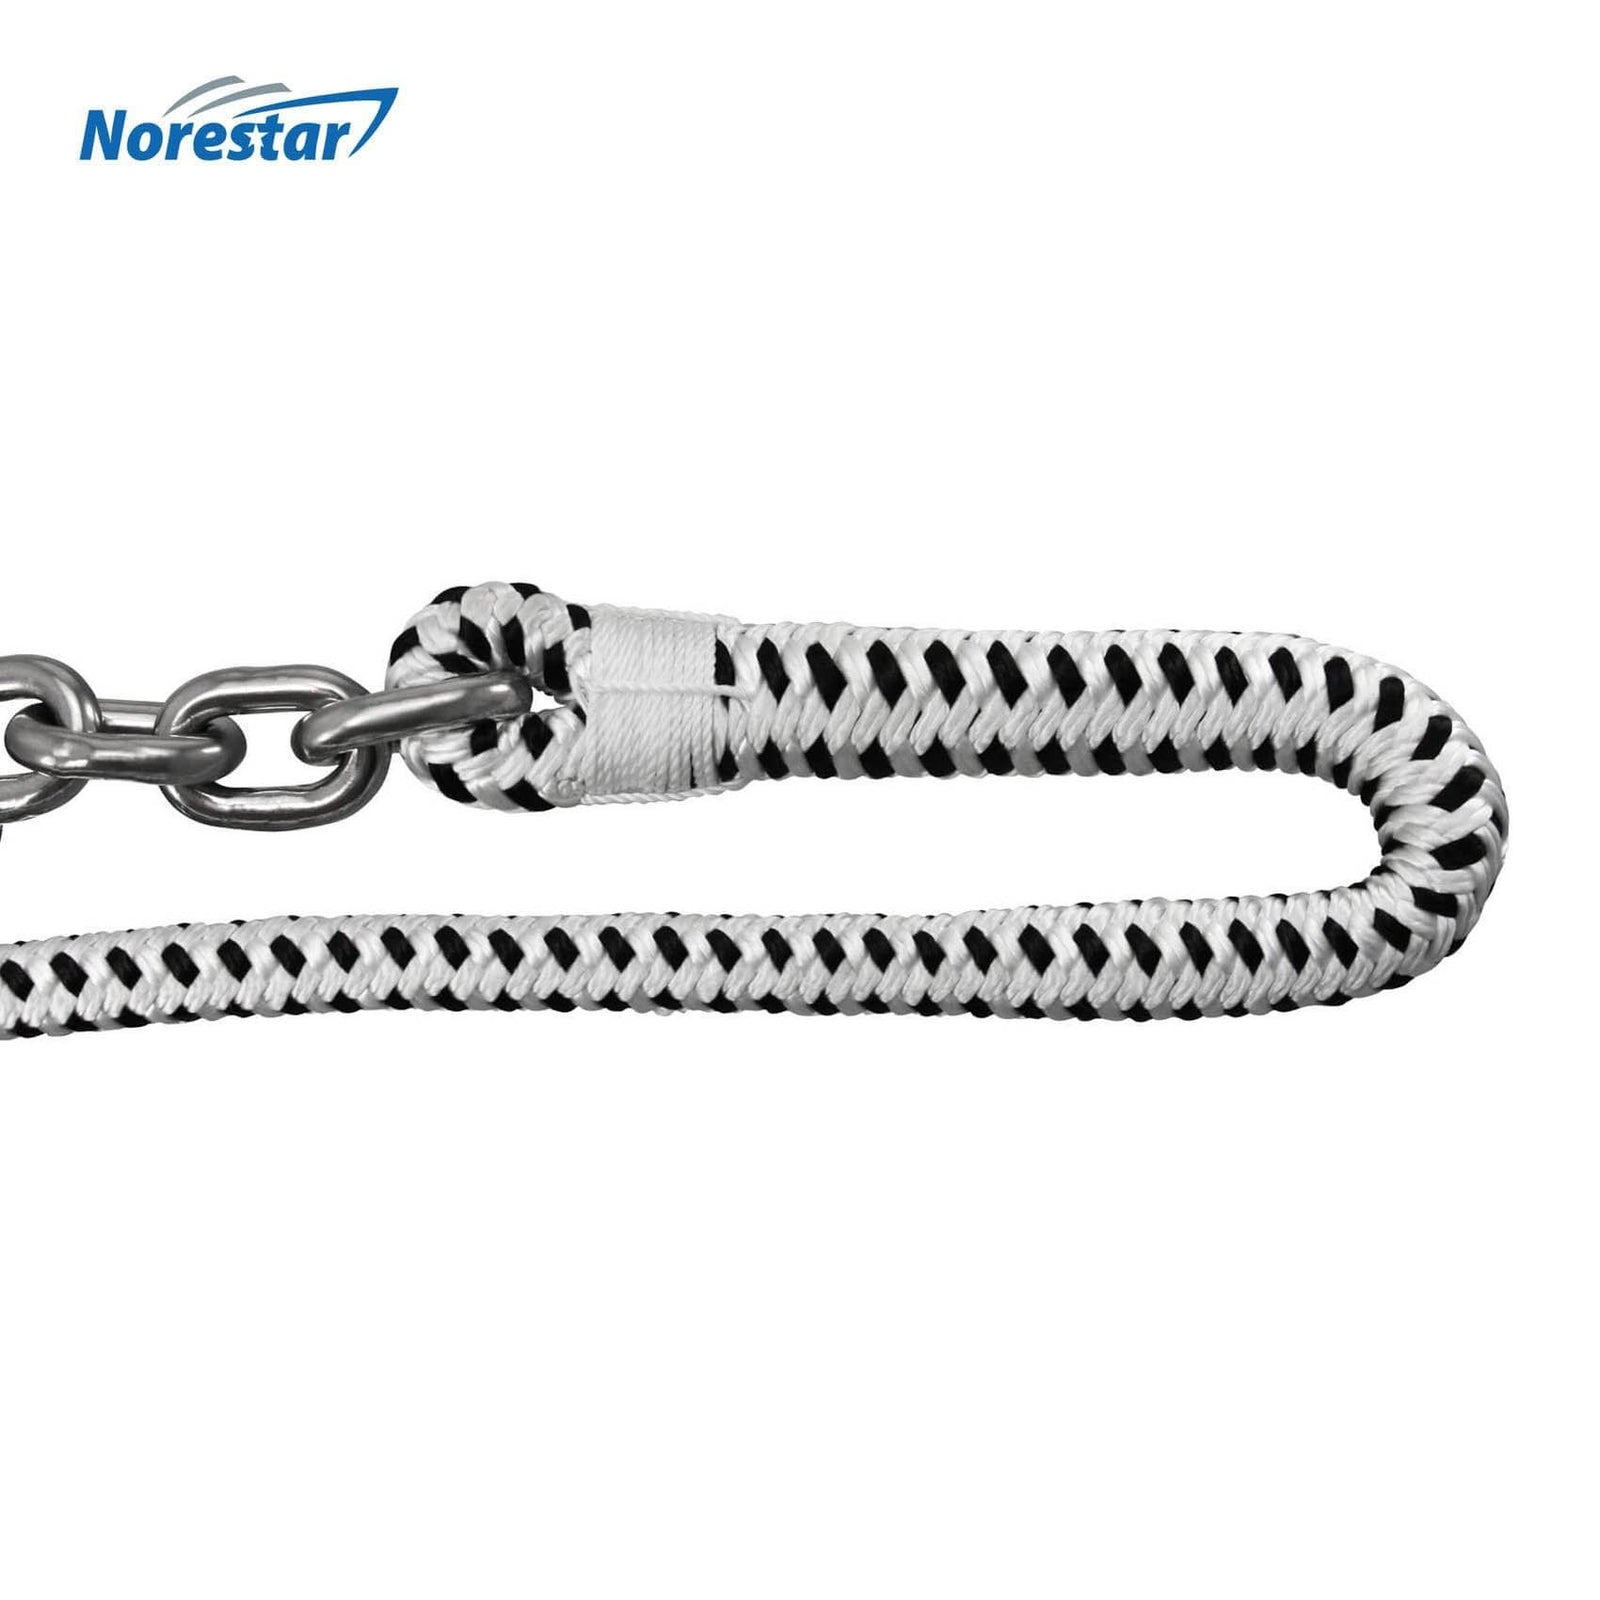 Braided Windlass Rope & Stainless Steel Chain - Detail